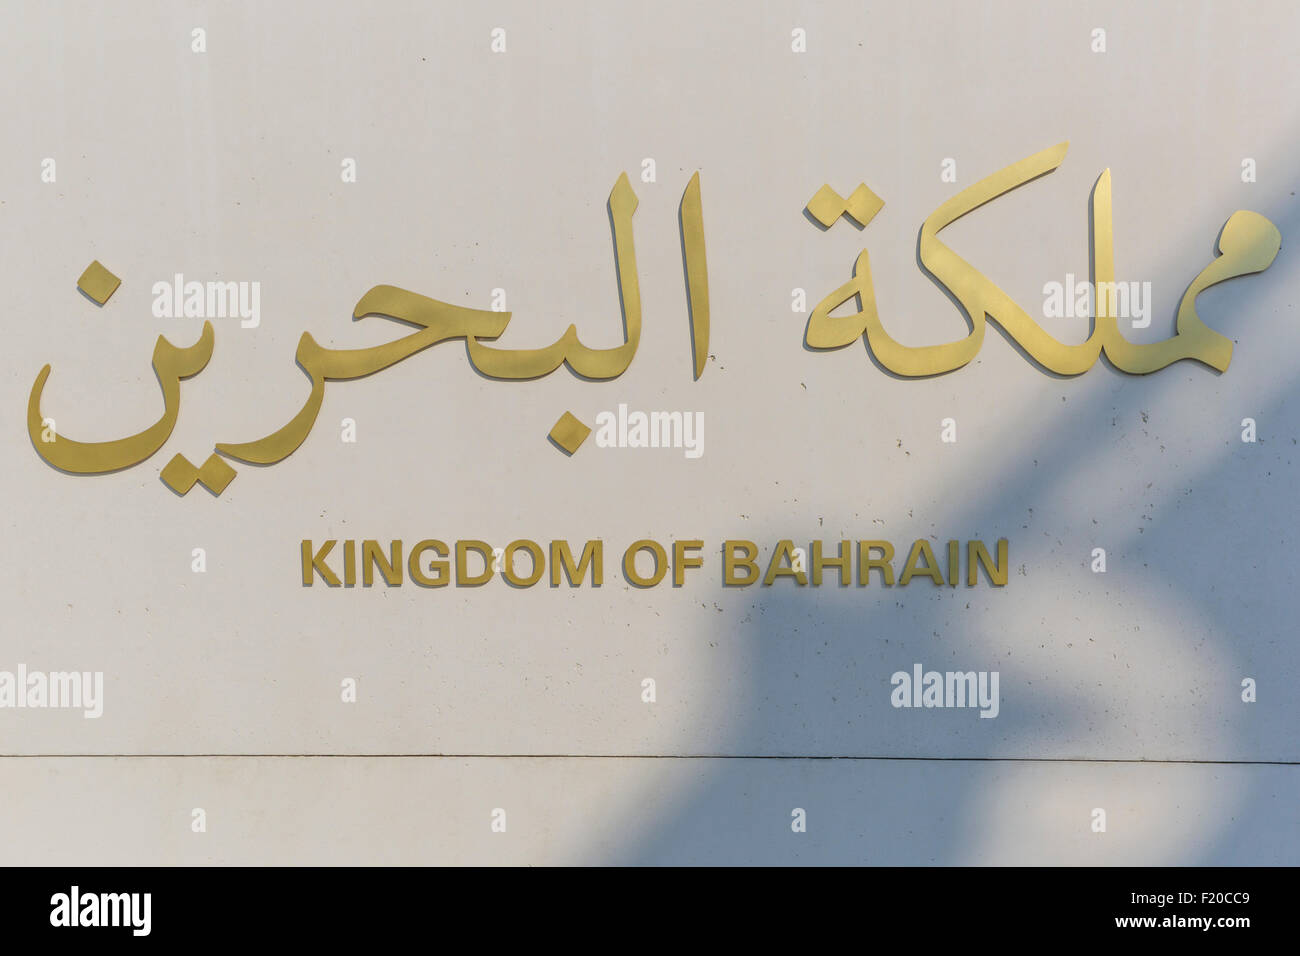 Milan, Italy, 12 August 2015: Detail of the Bahrain pavilion at the exhibition Expo 2015 Italy. - Stock Image